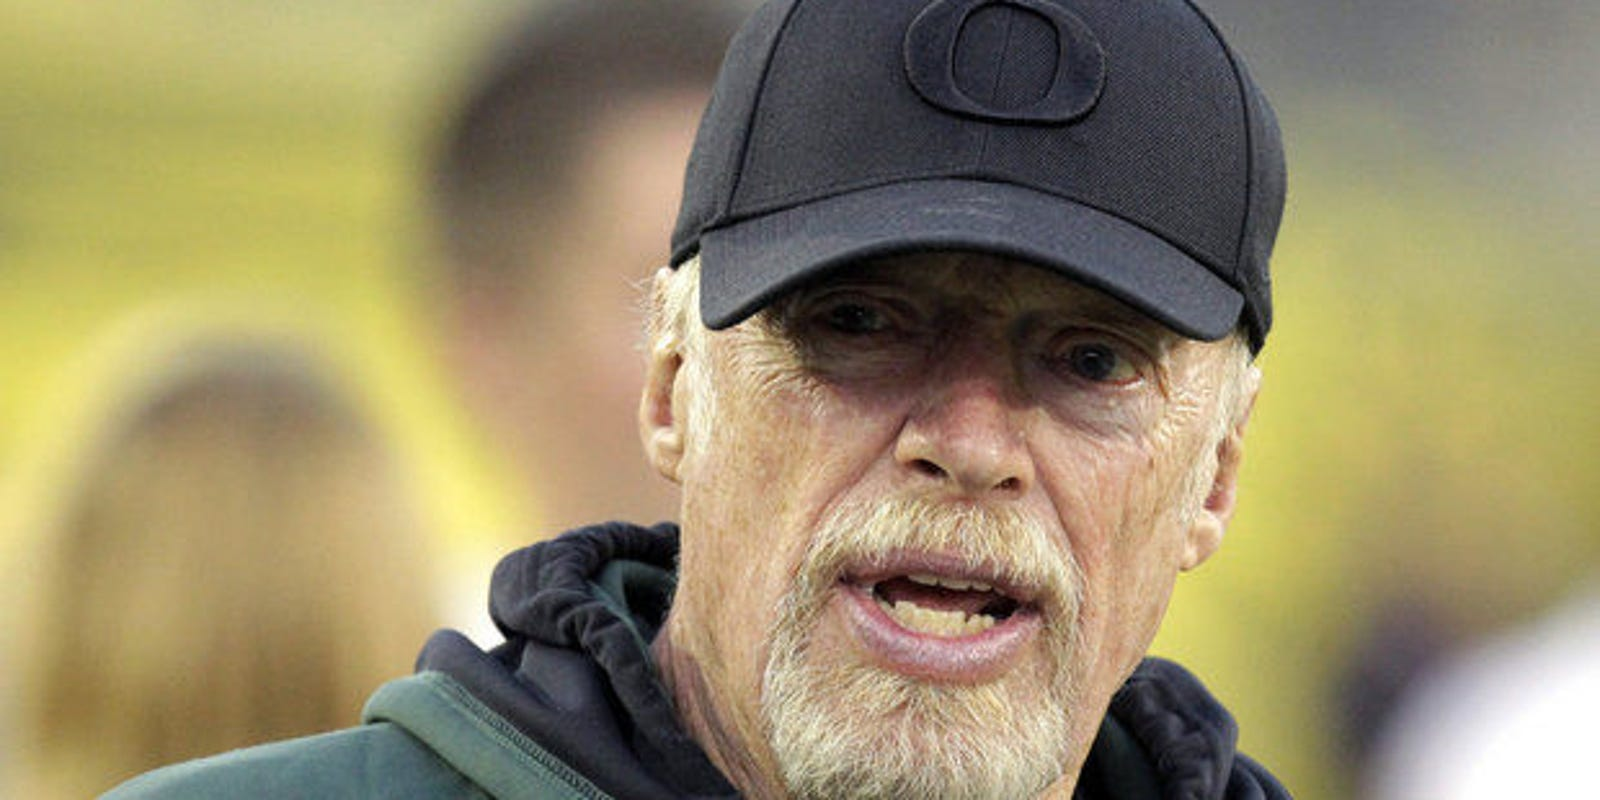 Nike co-founder Phil Knight stepping down as chairman